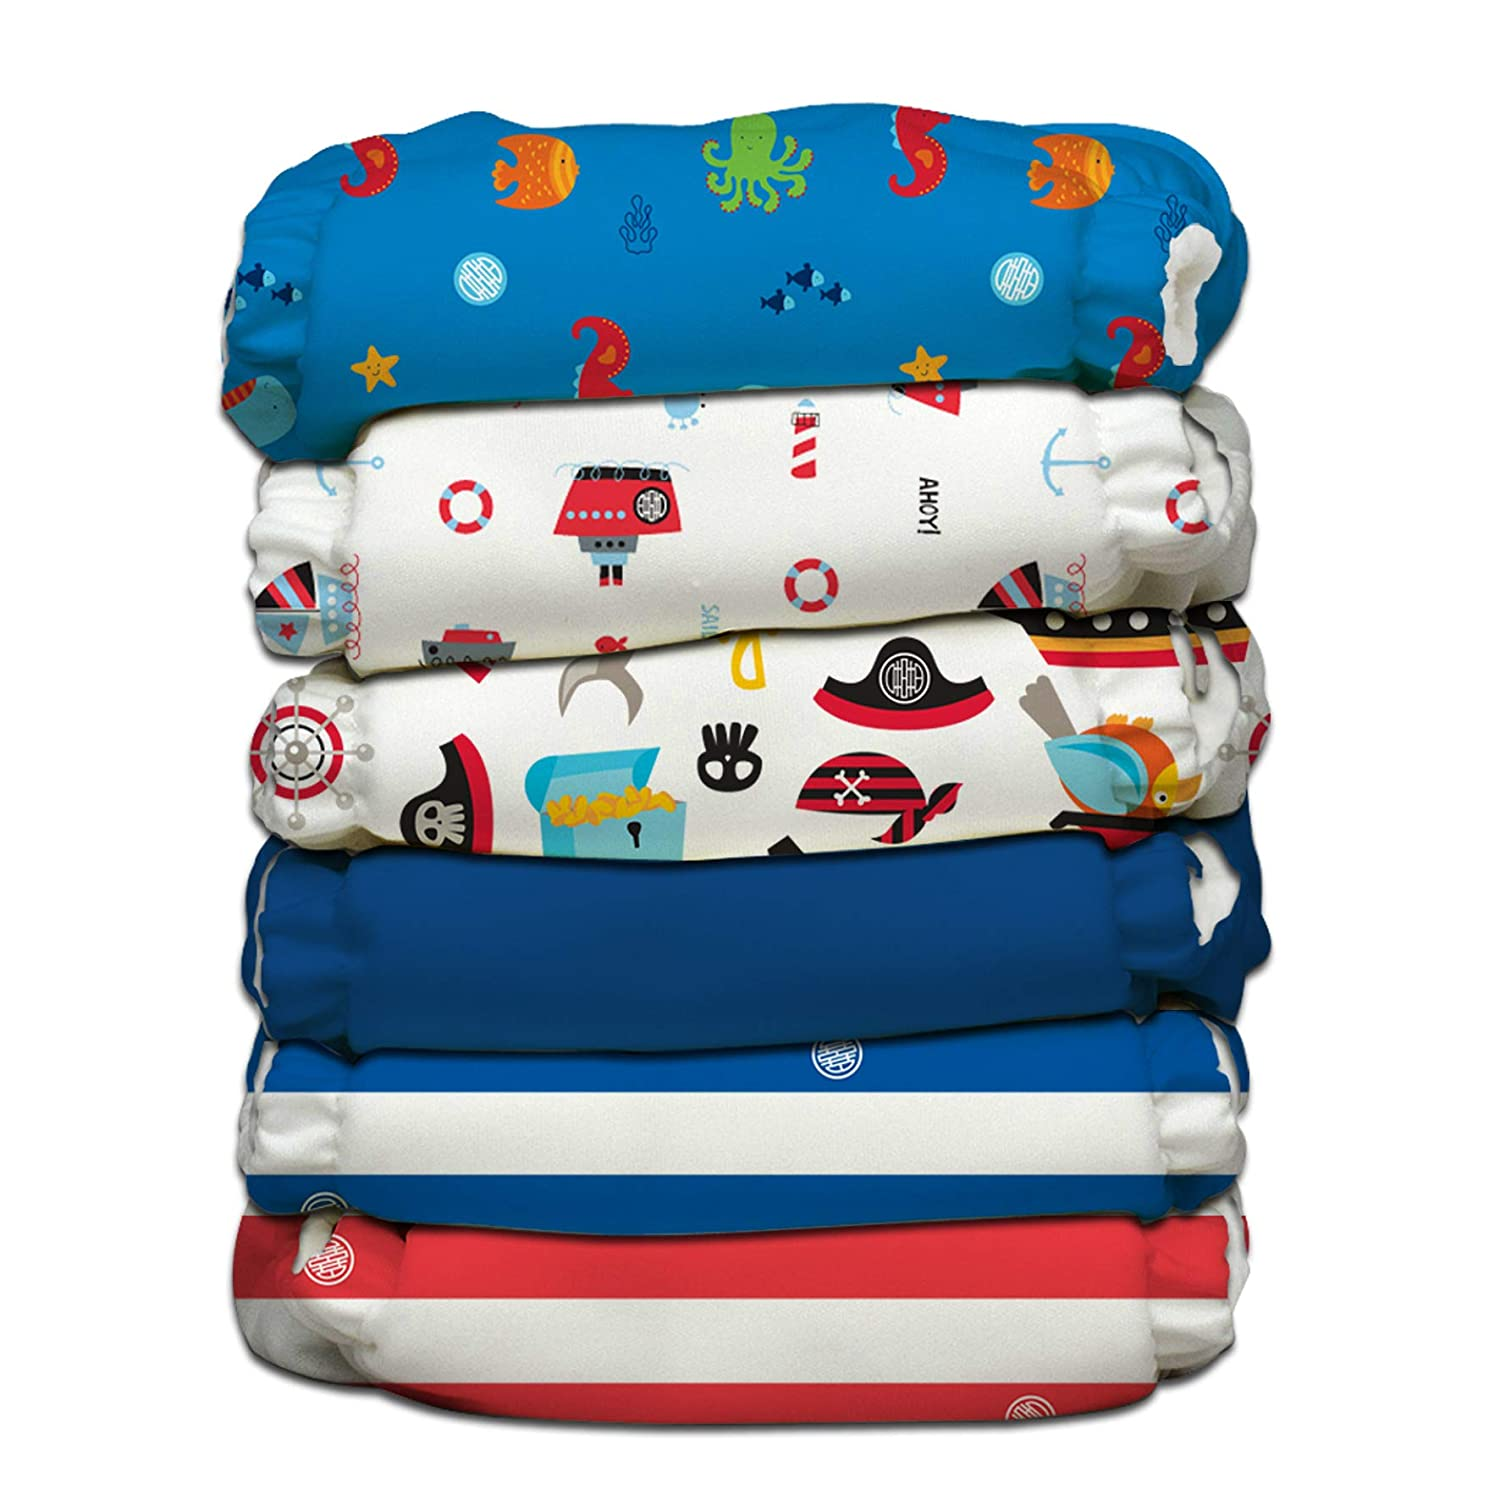 Charlie Banana 6 Diapers 12 Inserts Hybrid AIO, Ocean Flair, One Size Winc Design Limited 888398